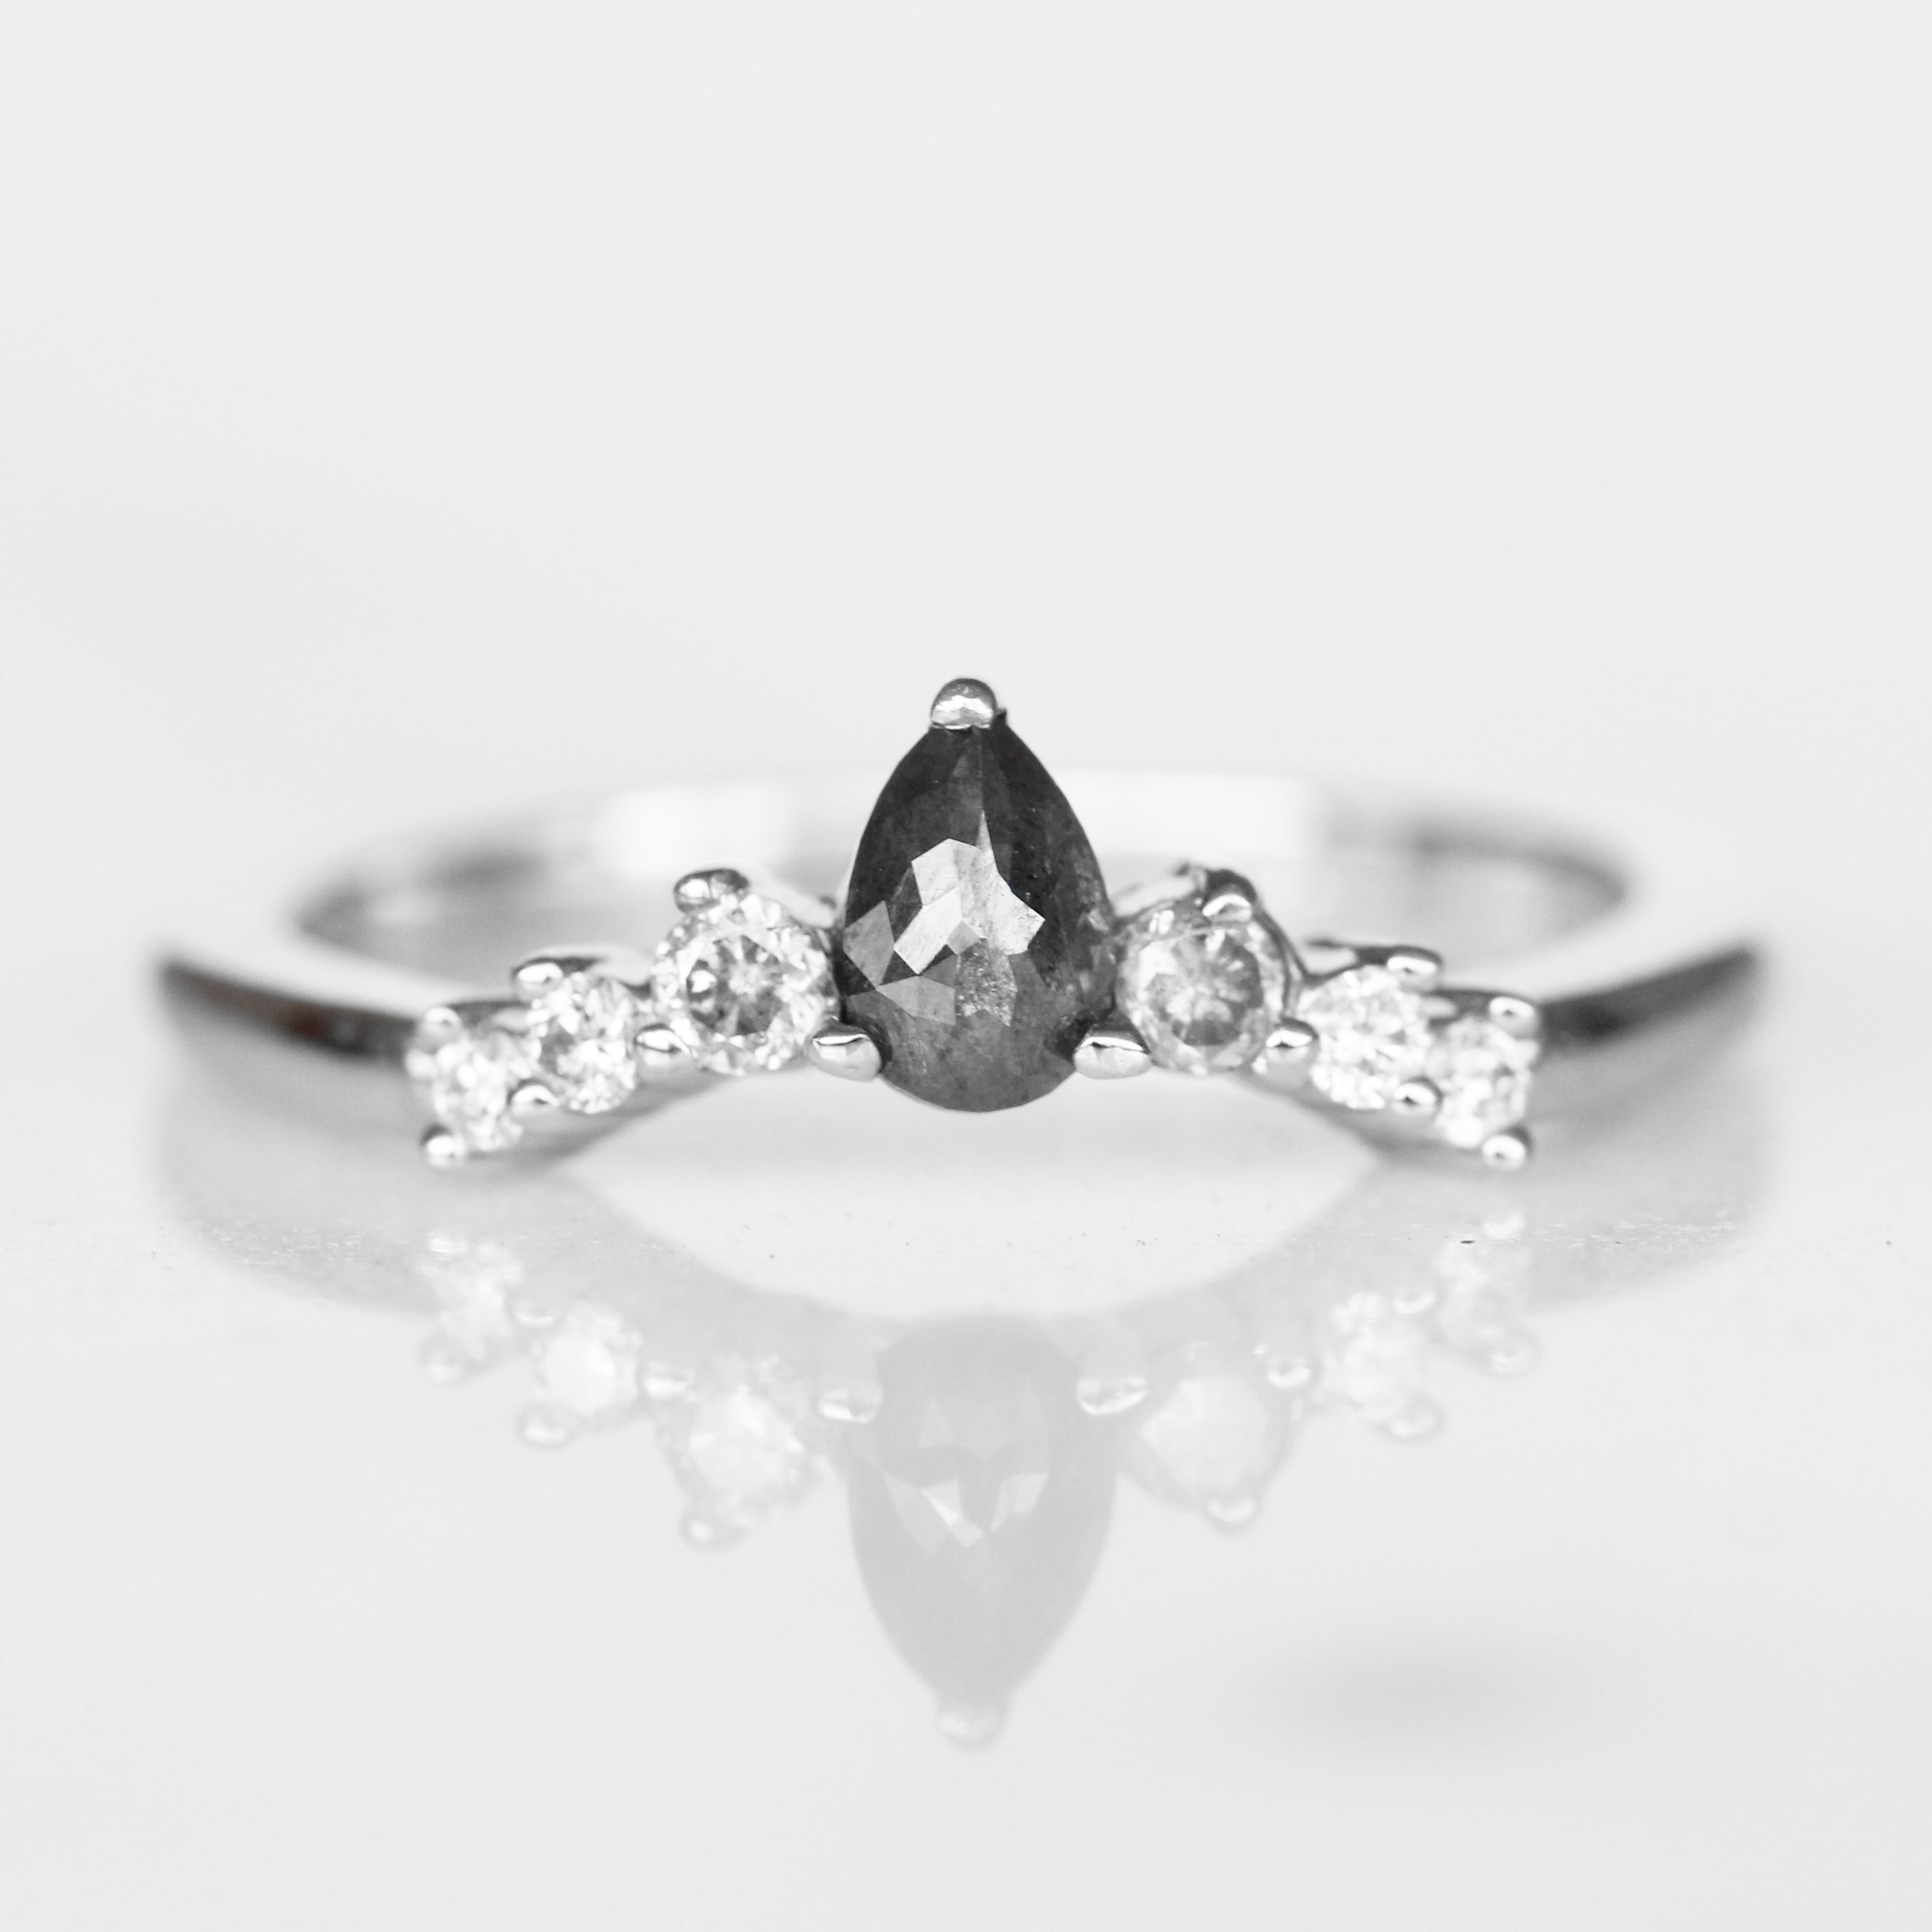 Moira - Ombre Contoured Diamond Wedding Stacking Band - made to order - Celestial Diamonds ® by Midwinter Co.